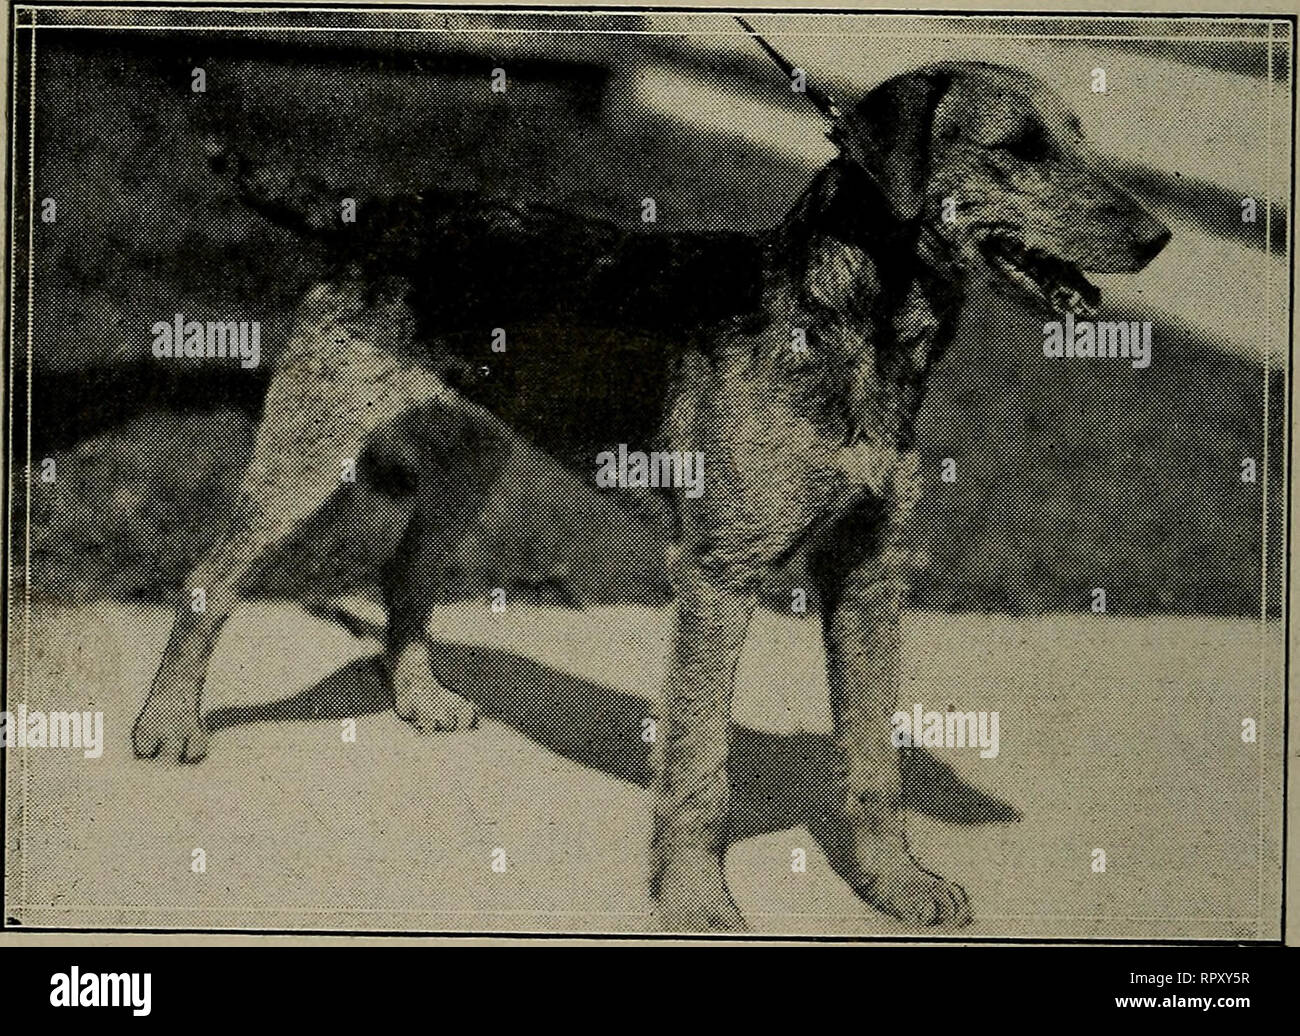 451c06c379bd7c Airedale Züchter  Hand buch. Airedale Terrier. 80 DIE AIREDALE ...